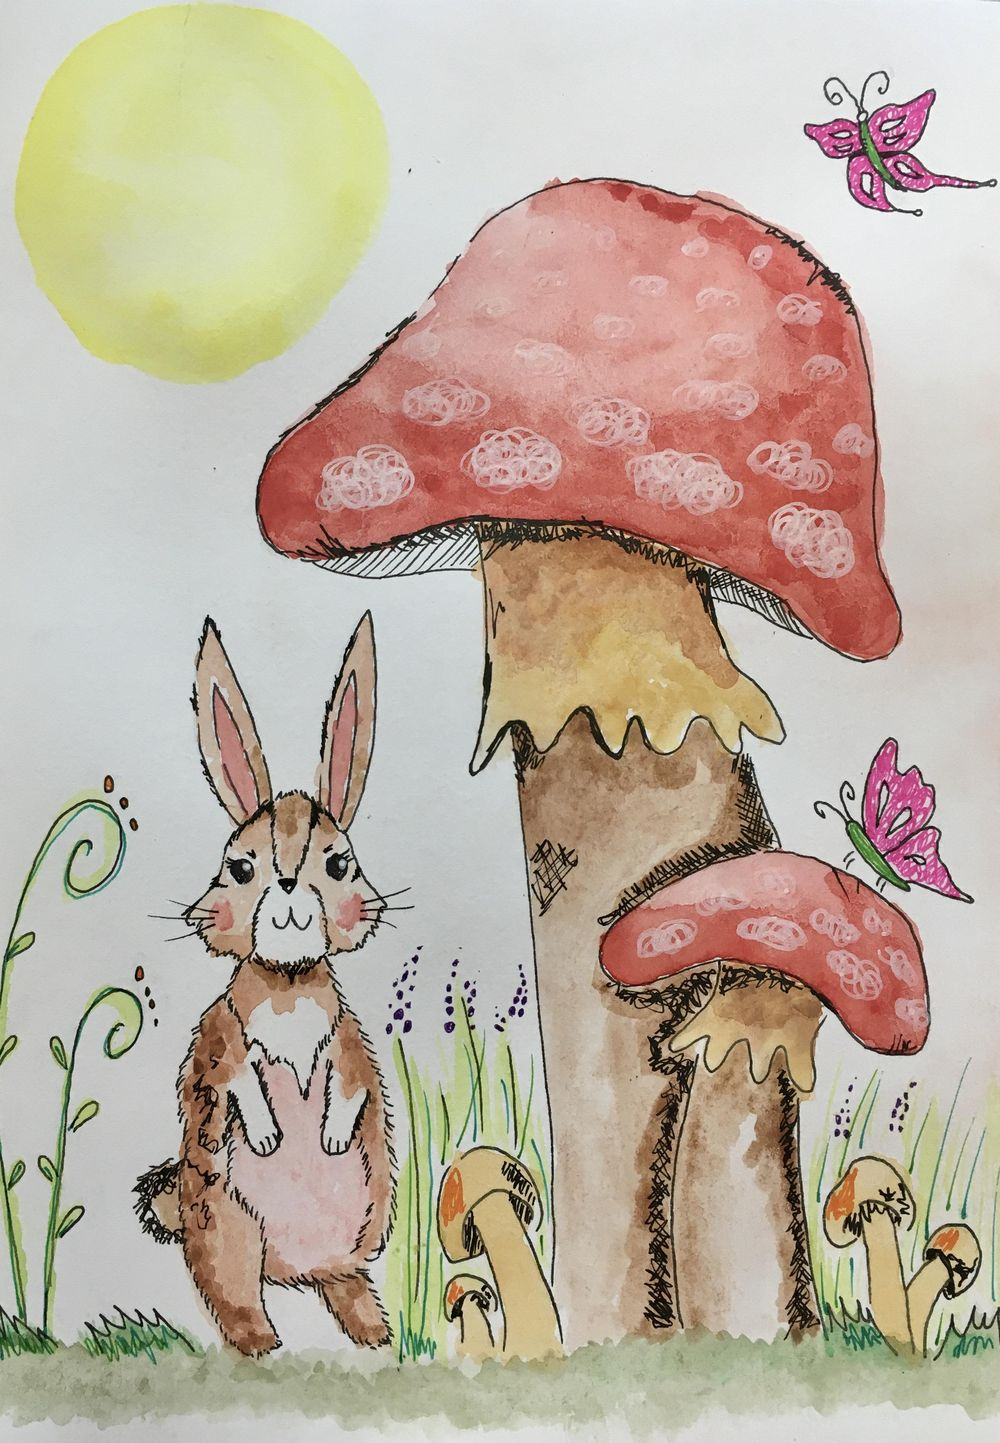 cute little bunny - image 2 - student project